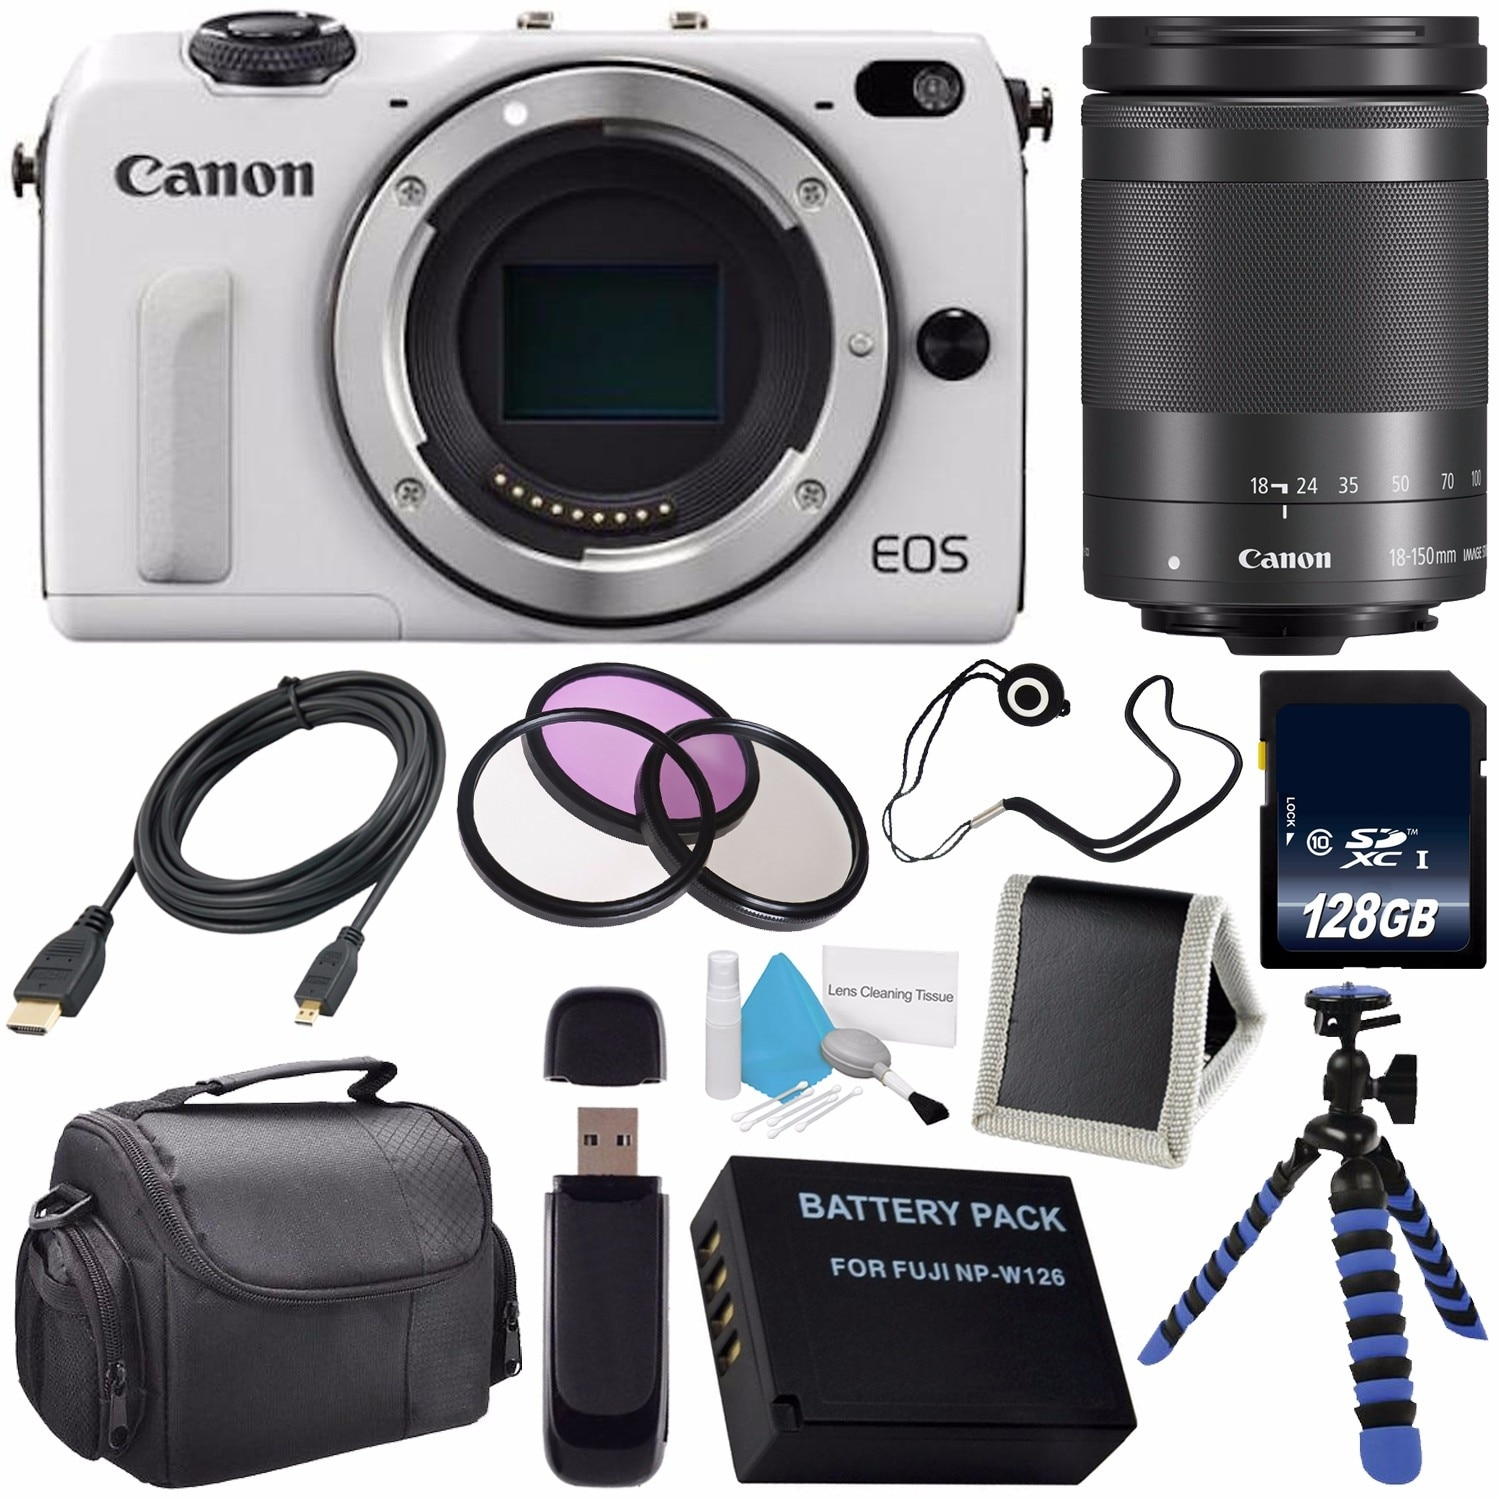 Shop Canon Eos M3 Mark Iii 242 Mp Mirrorless Camera International M10 Ef M 15 45mm Is Stm White Model No Warranty 18 150 Lens Bundle Free Shipping Today